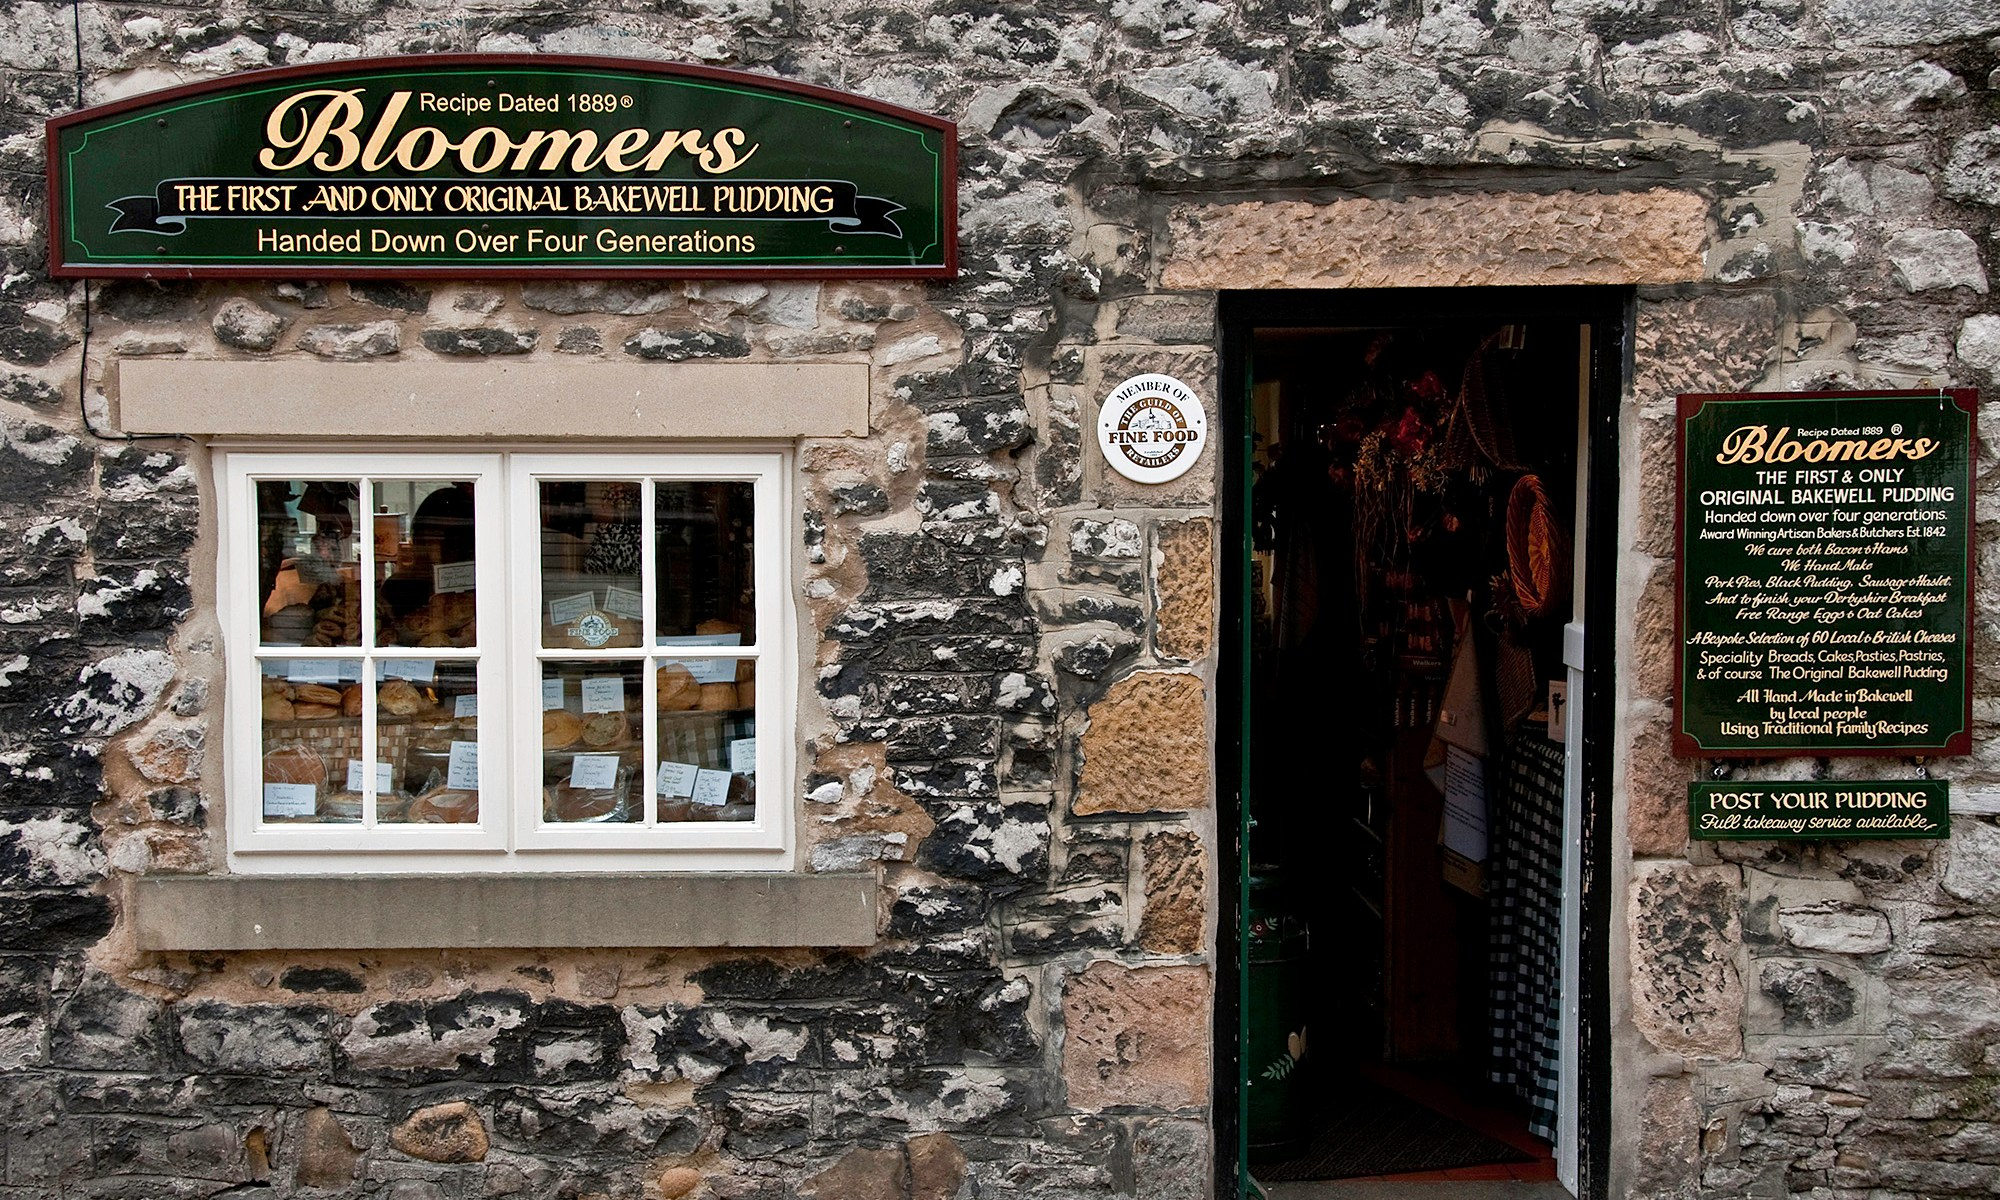 Bloomers Bakewell Pudding Shop